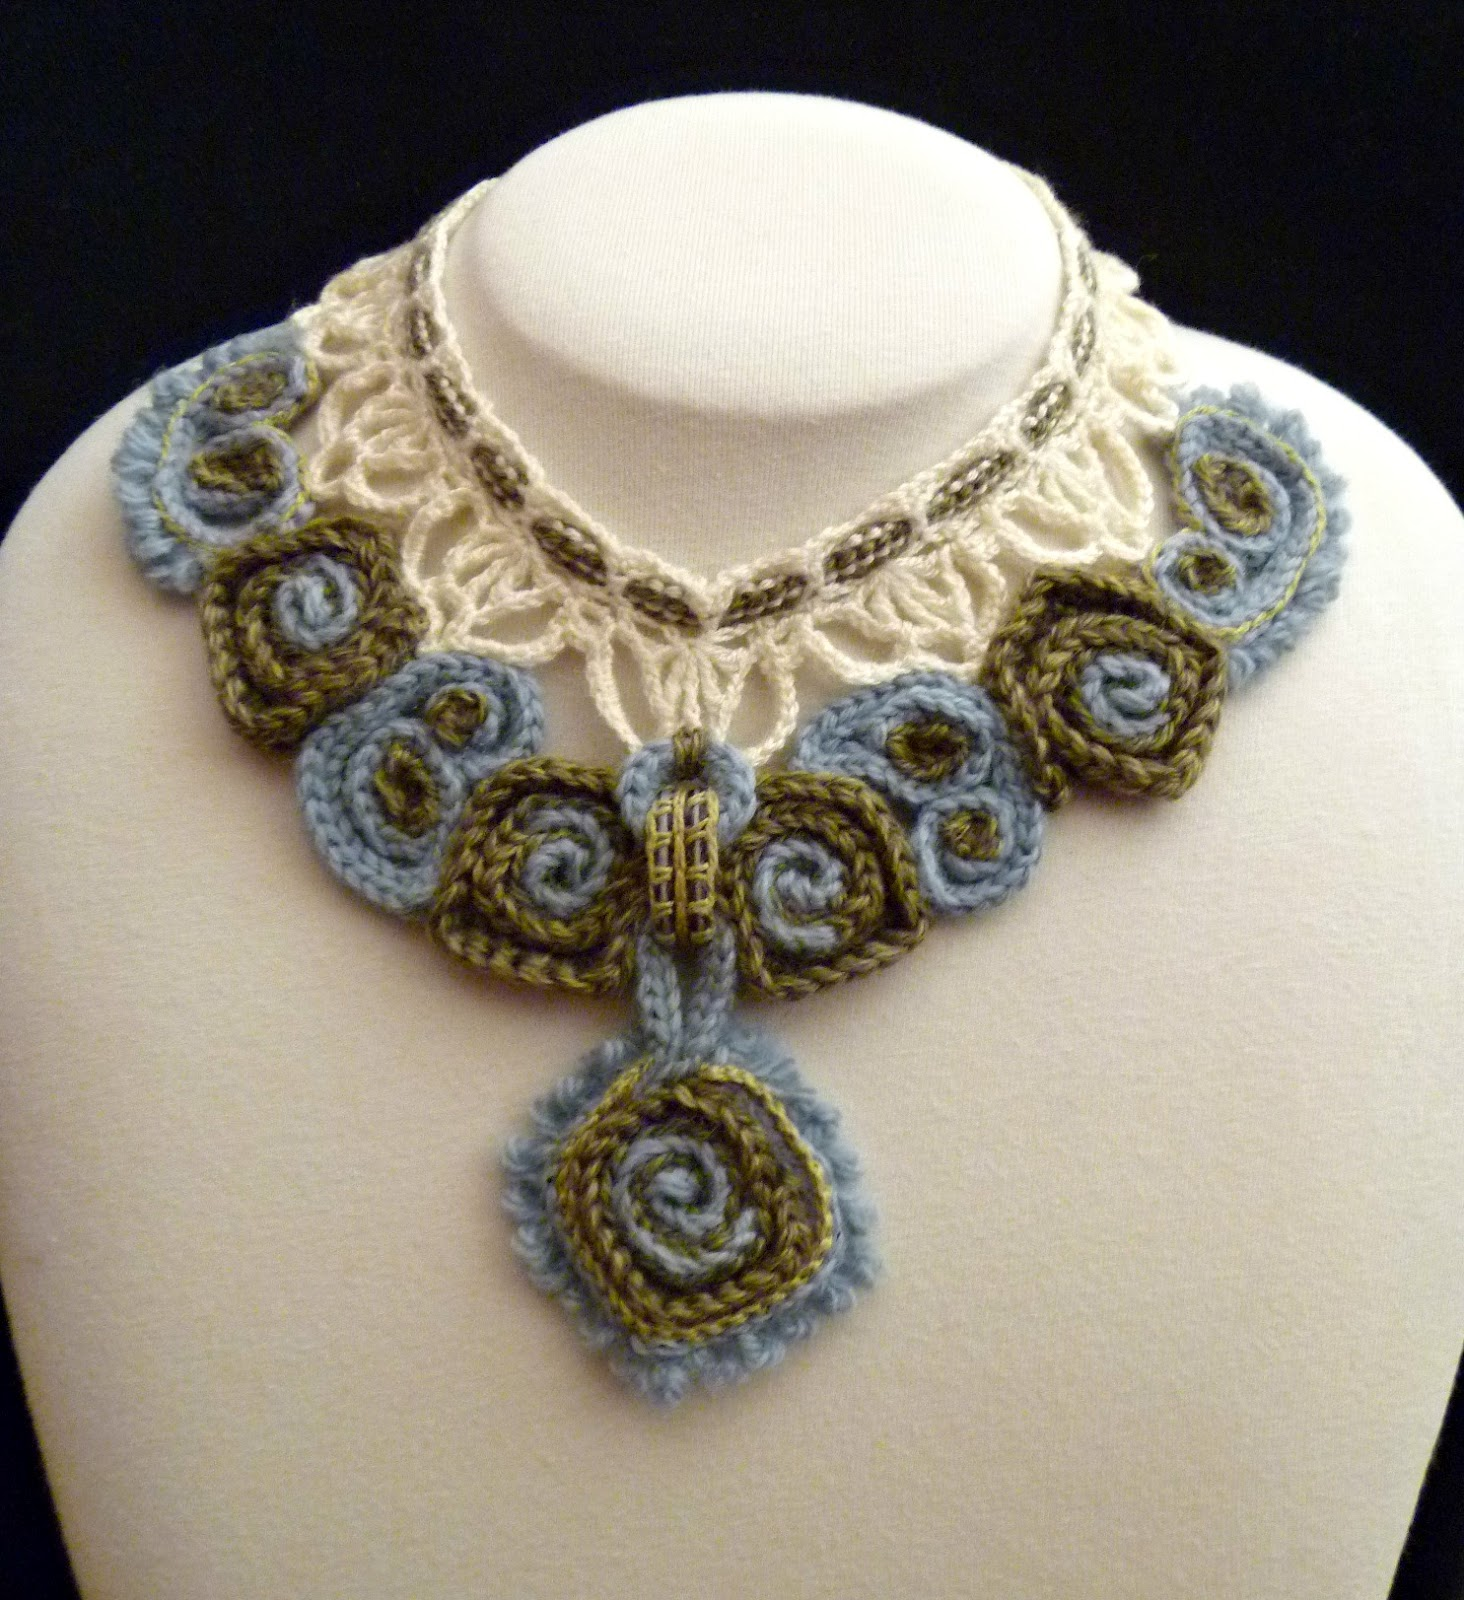 Stitch Story: My Prize Winning Marseille Crochet Necklace